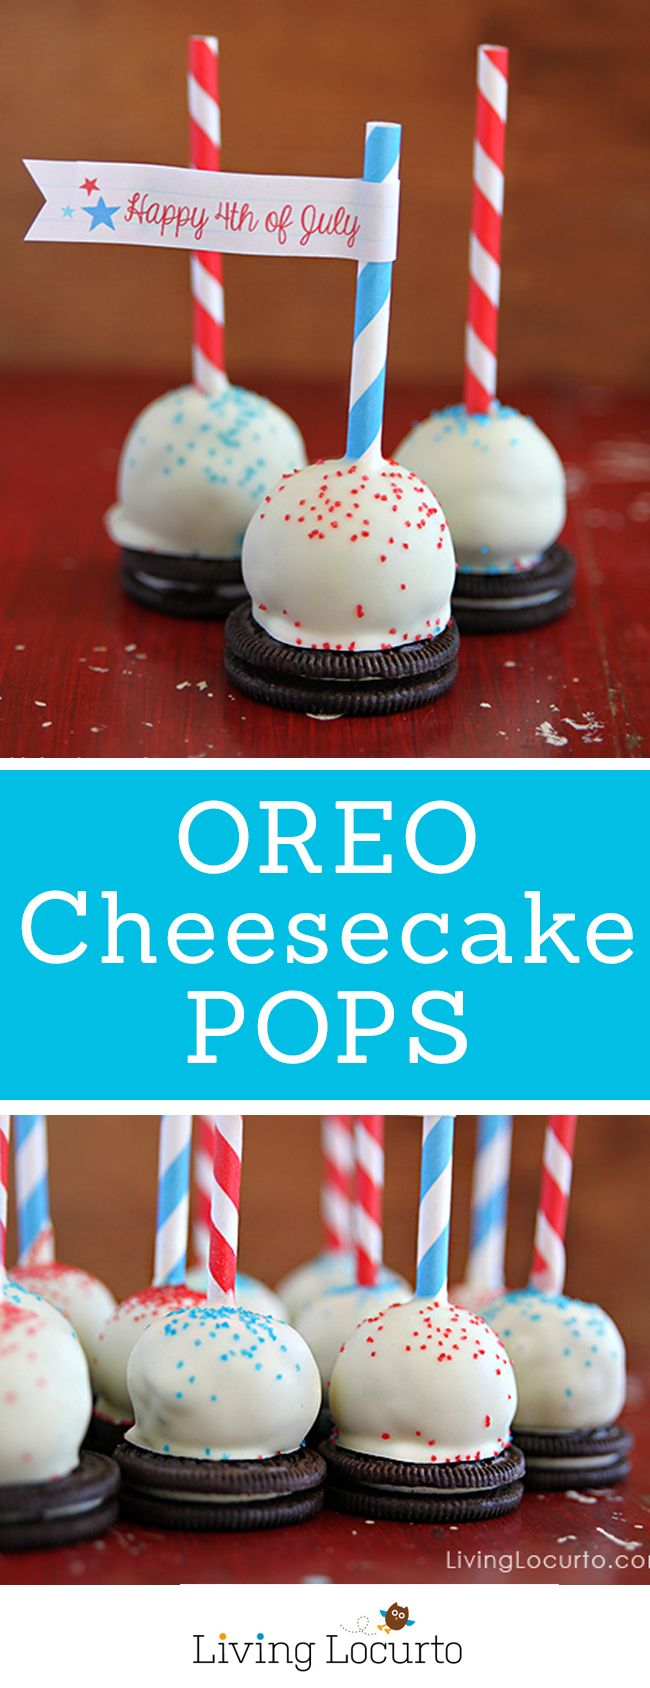 Oreo Cheesecake Pops Recipe. Easy no bake dessert idea for chocolate cheesecake lovers! Make, chill and eat! Fun Holiday Party Food. LivingLocurto.com